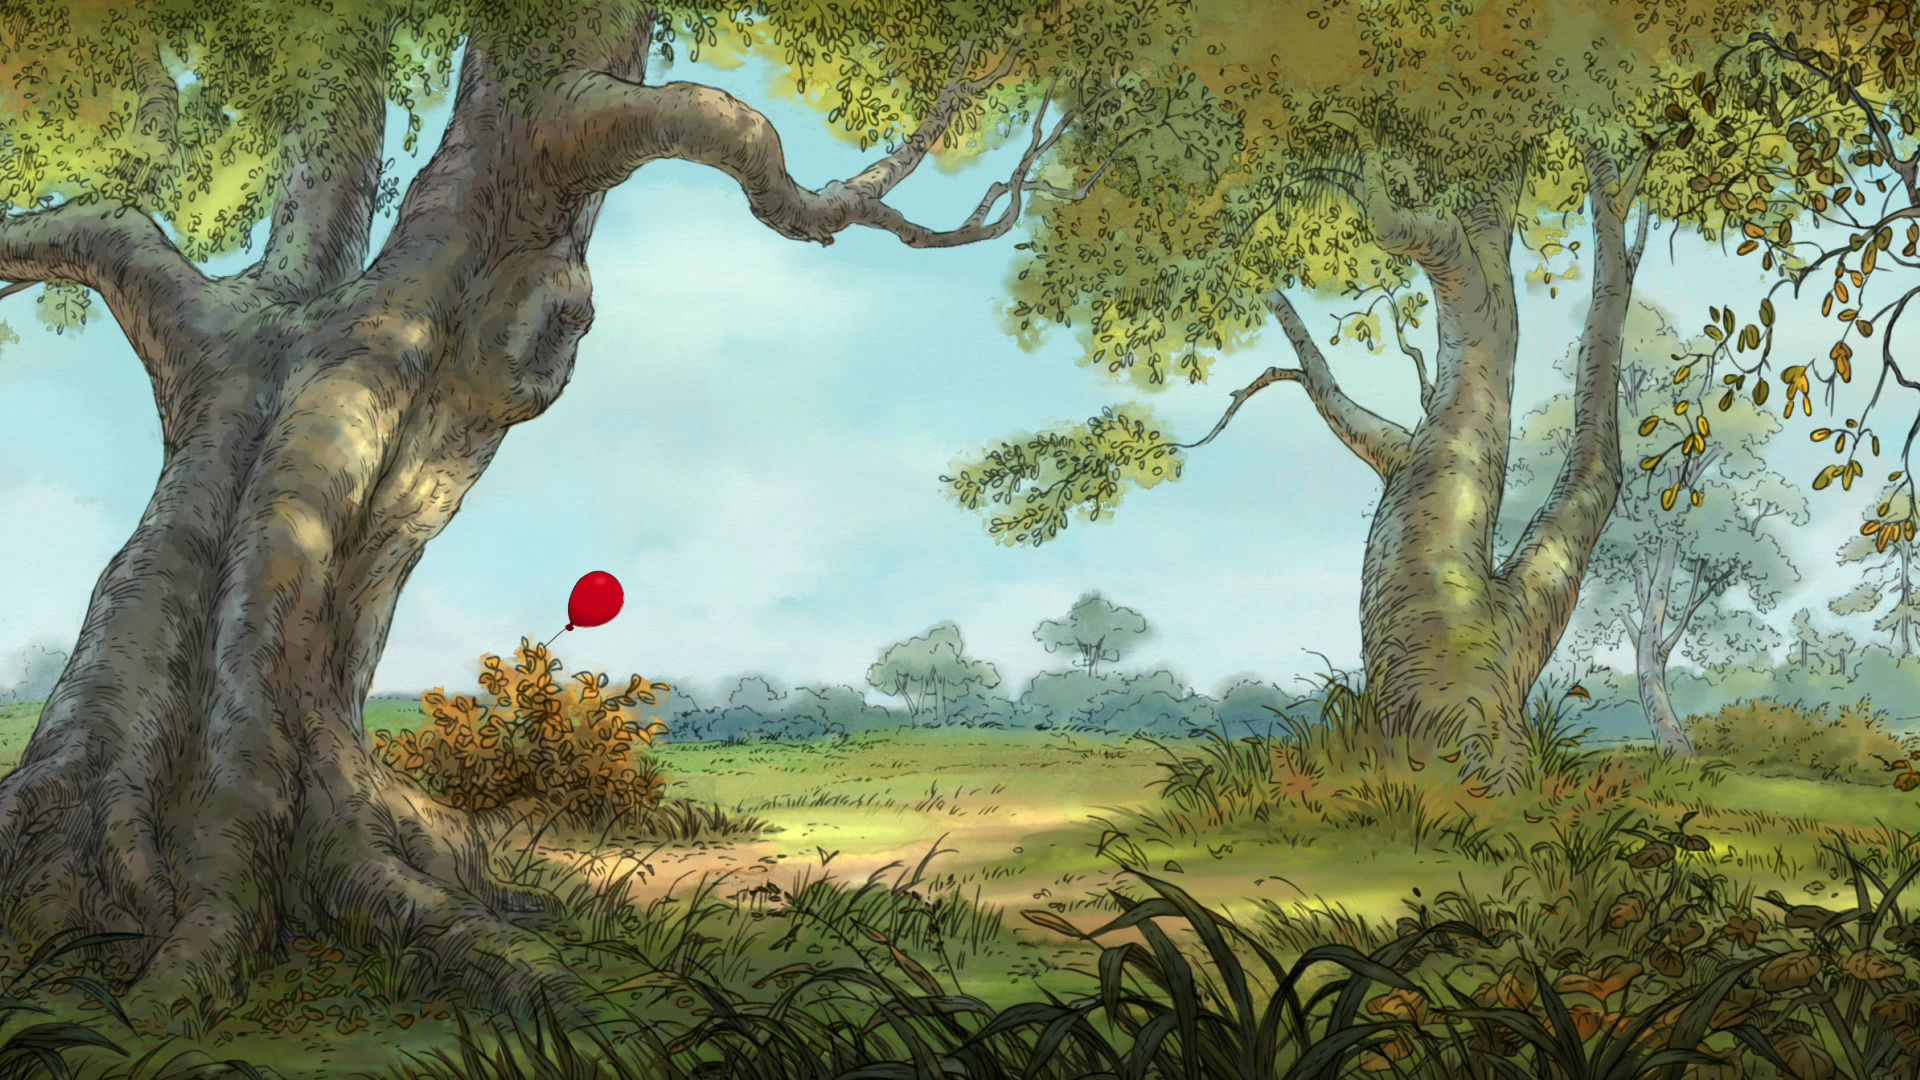 Winnie The Pooh Animation Backgrounds Google Search